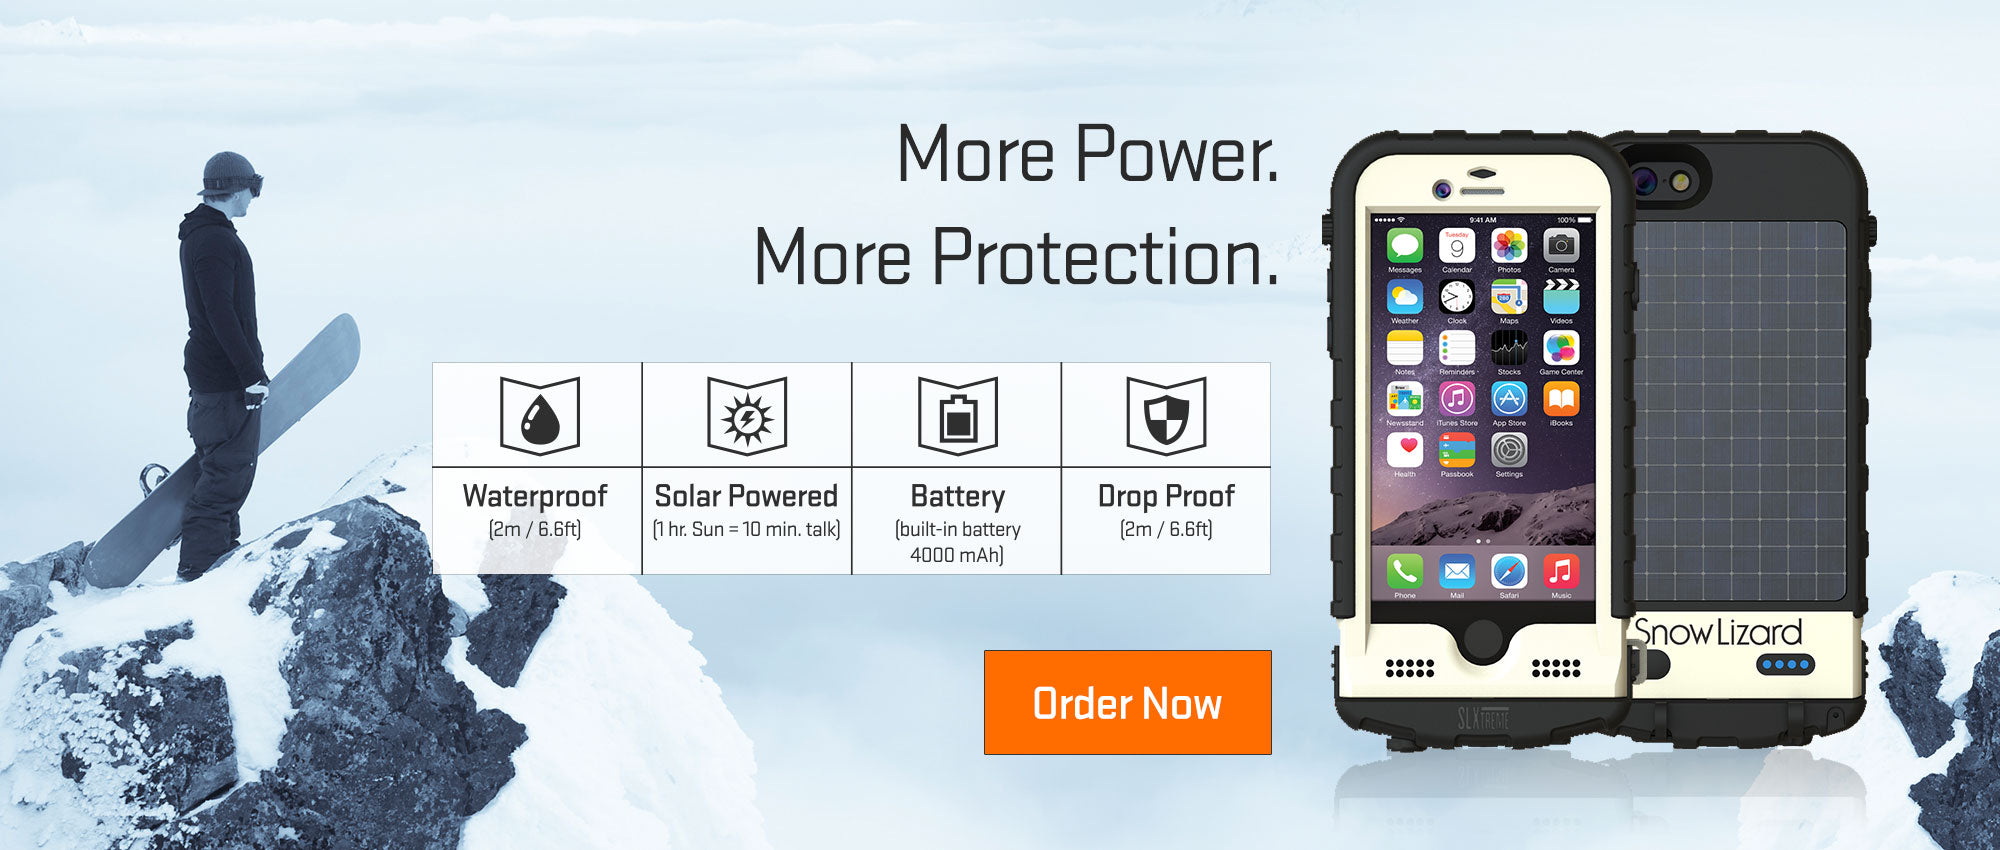 SLXtreme6 More Power. More Protection.